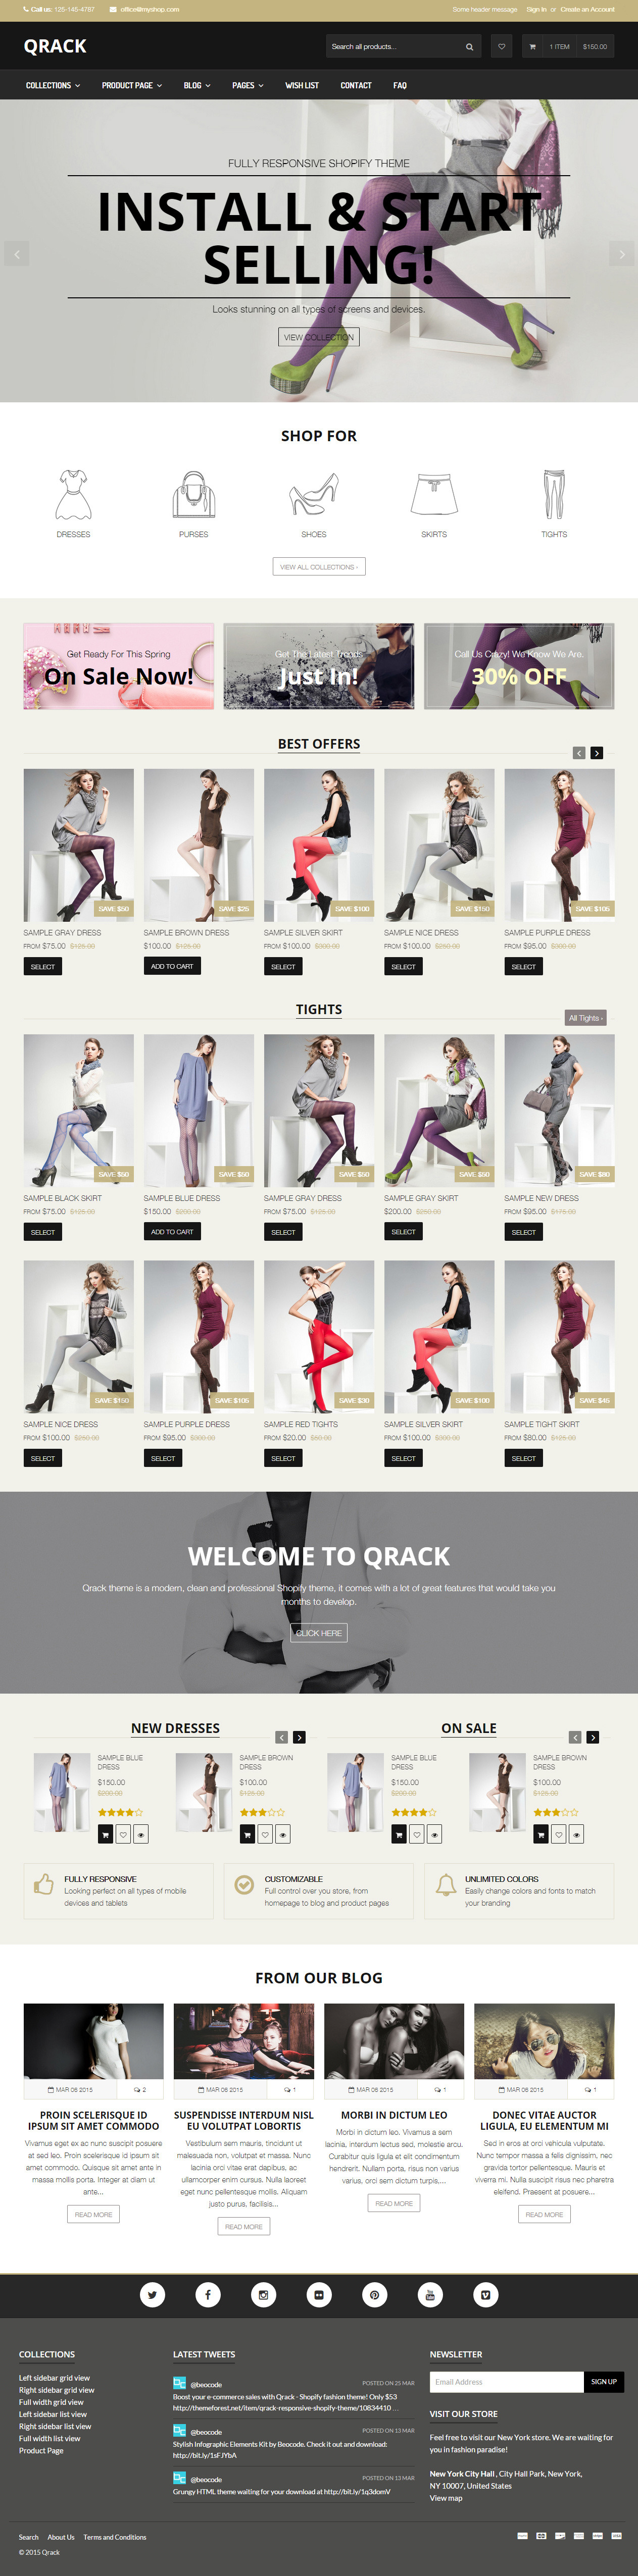 Qrack - Responsive Html Shop Template by beocode | ThemeForest